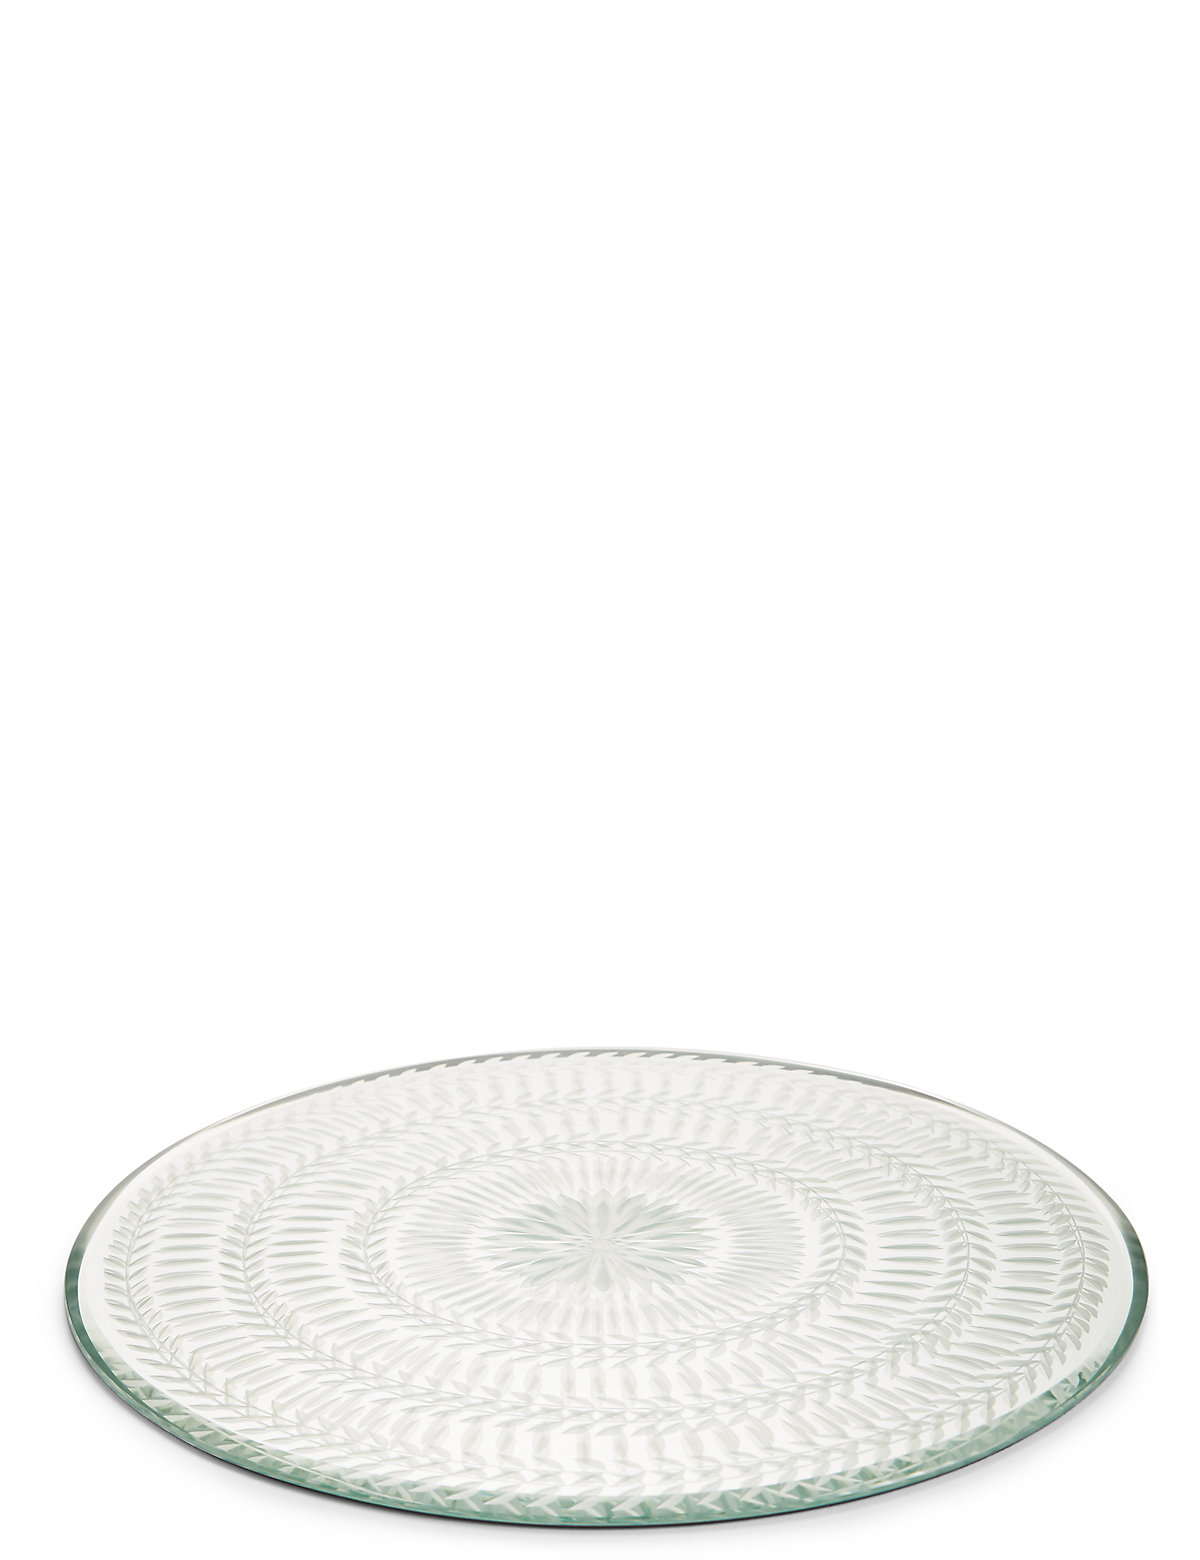 Glass placemats shop for cheap products and save online for Glass table placemats